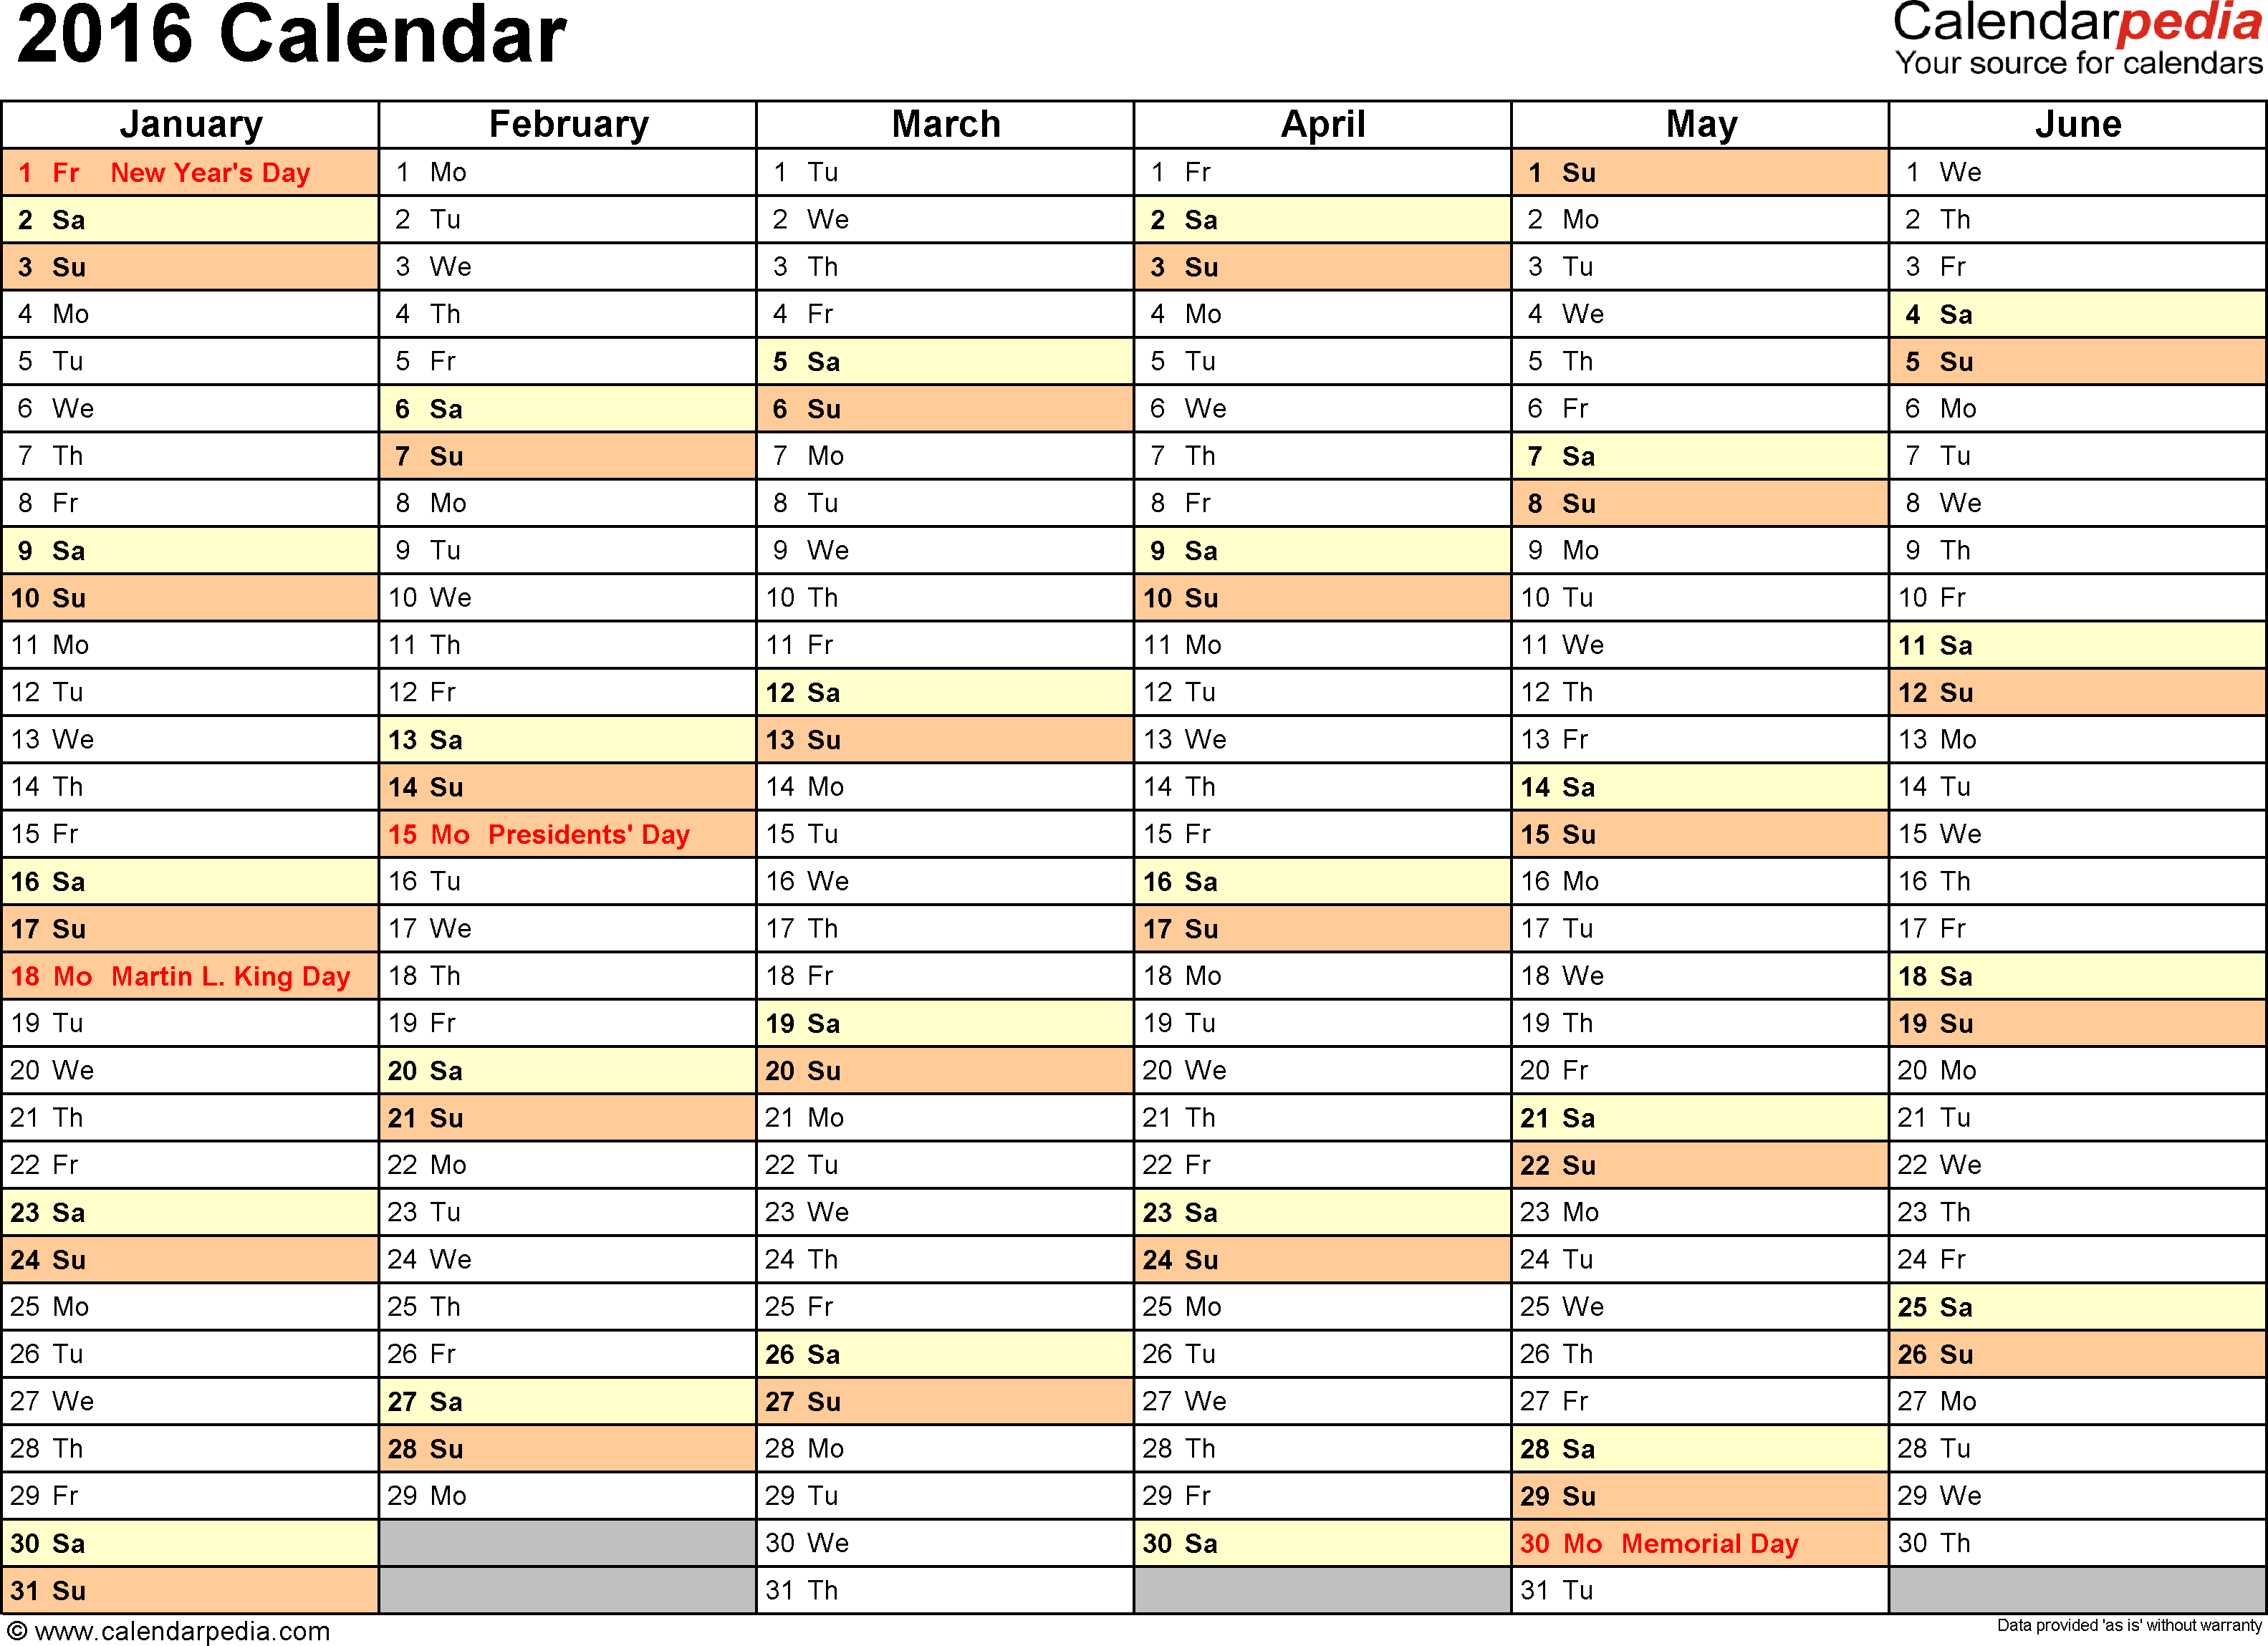 Ediblewildsus  Inspiring  Calendar  Download  Free Printable Excel Templates Xls With Hot Template   Calendar For Excel Months Horizontally  Pages Landscape Orientation With Extraordinary How To Use The Sumif Function In Excel Also Bill Excel Template In Addition Excel Add Note And Send Email From Excel List As Well As If Or If Excel Additionally Excel Energy Center Map From Calendarpediacom With Ediblewildsus  Hot  Calendar  Download  Free Printable Excel Templates Xls With Extraordinary Template   Calendar For Excel Months Horizontally  Pages Landscape Orientation And Inspiring How To Use The Sumif Function In Excel Also Bill Excel Template In Addition Excel Add Note From Calendarpediacom